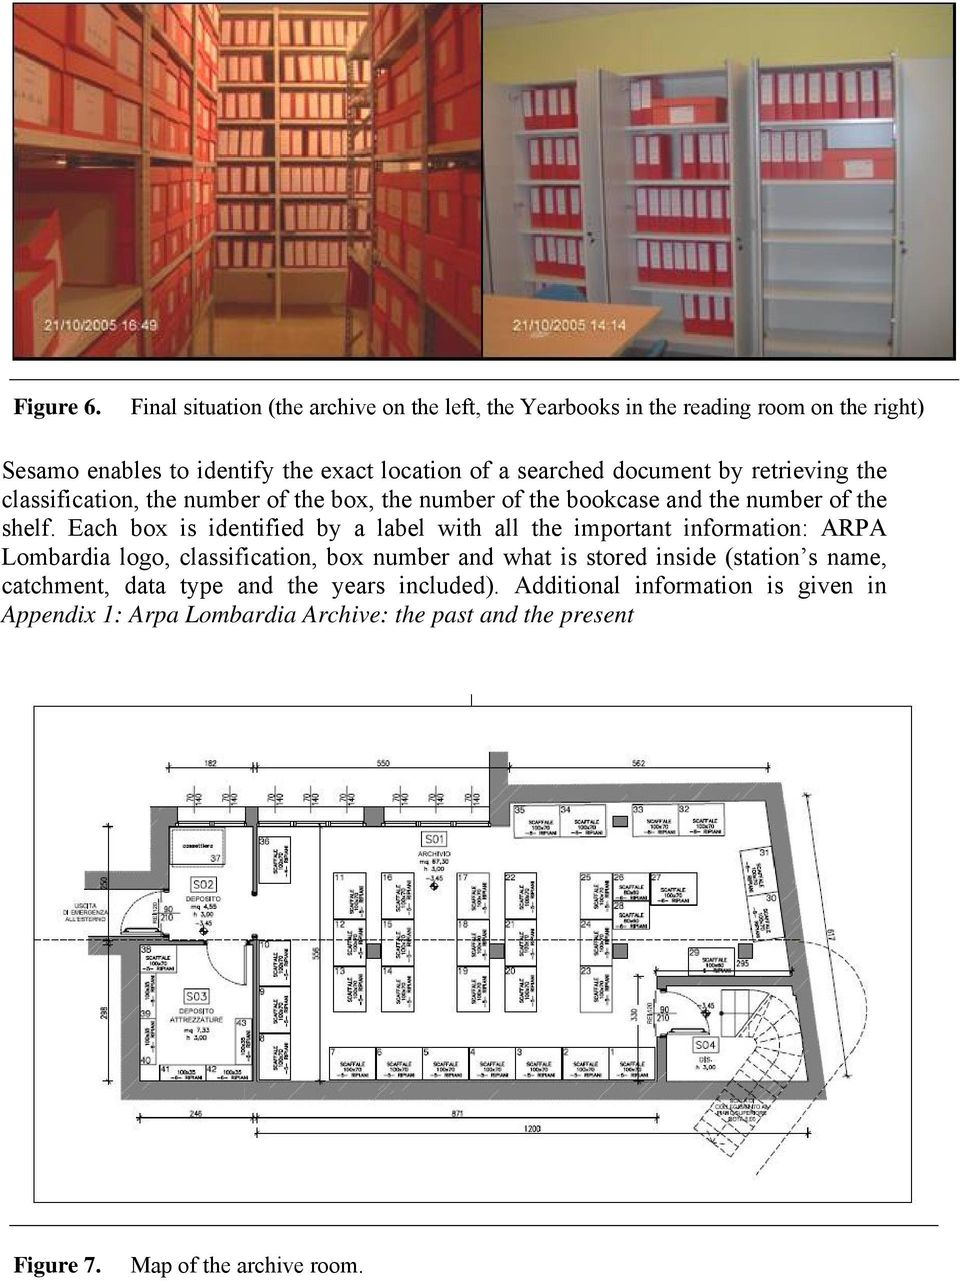 document by retrieving the classification, the number of the box, the number of the bookcase and the number of the shelf.